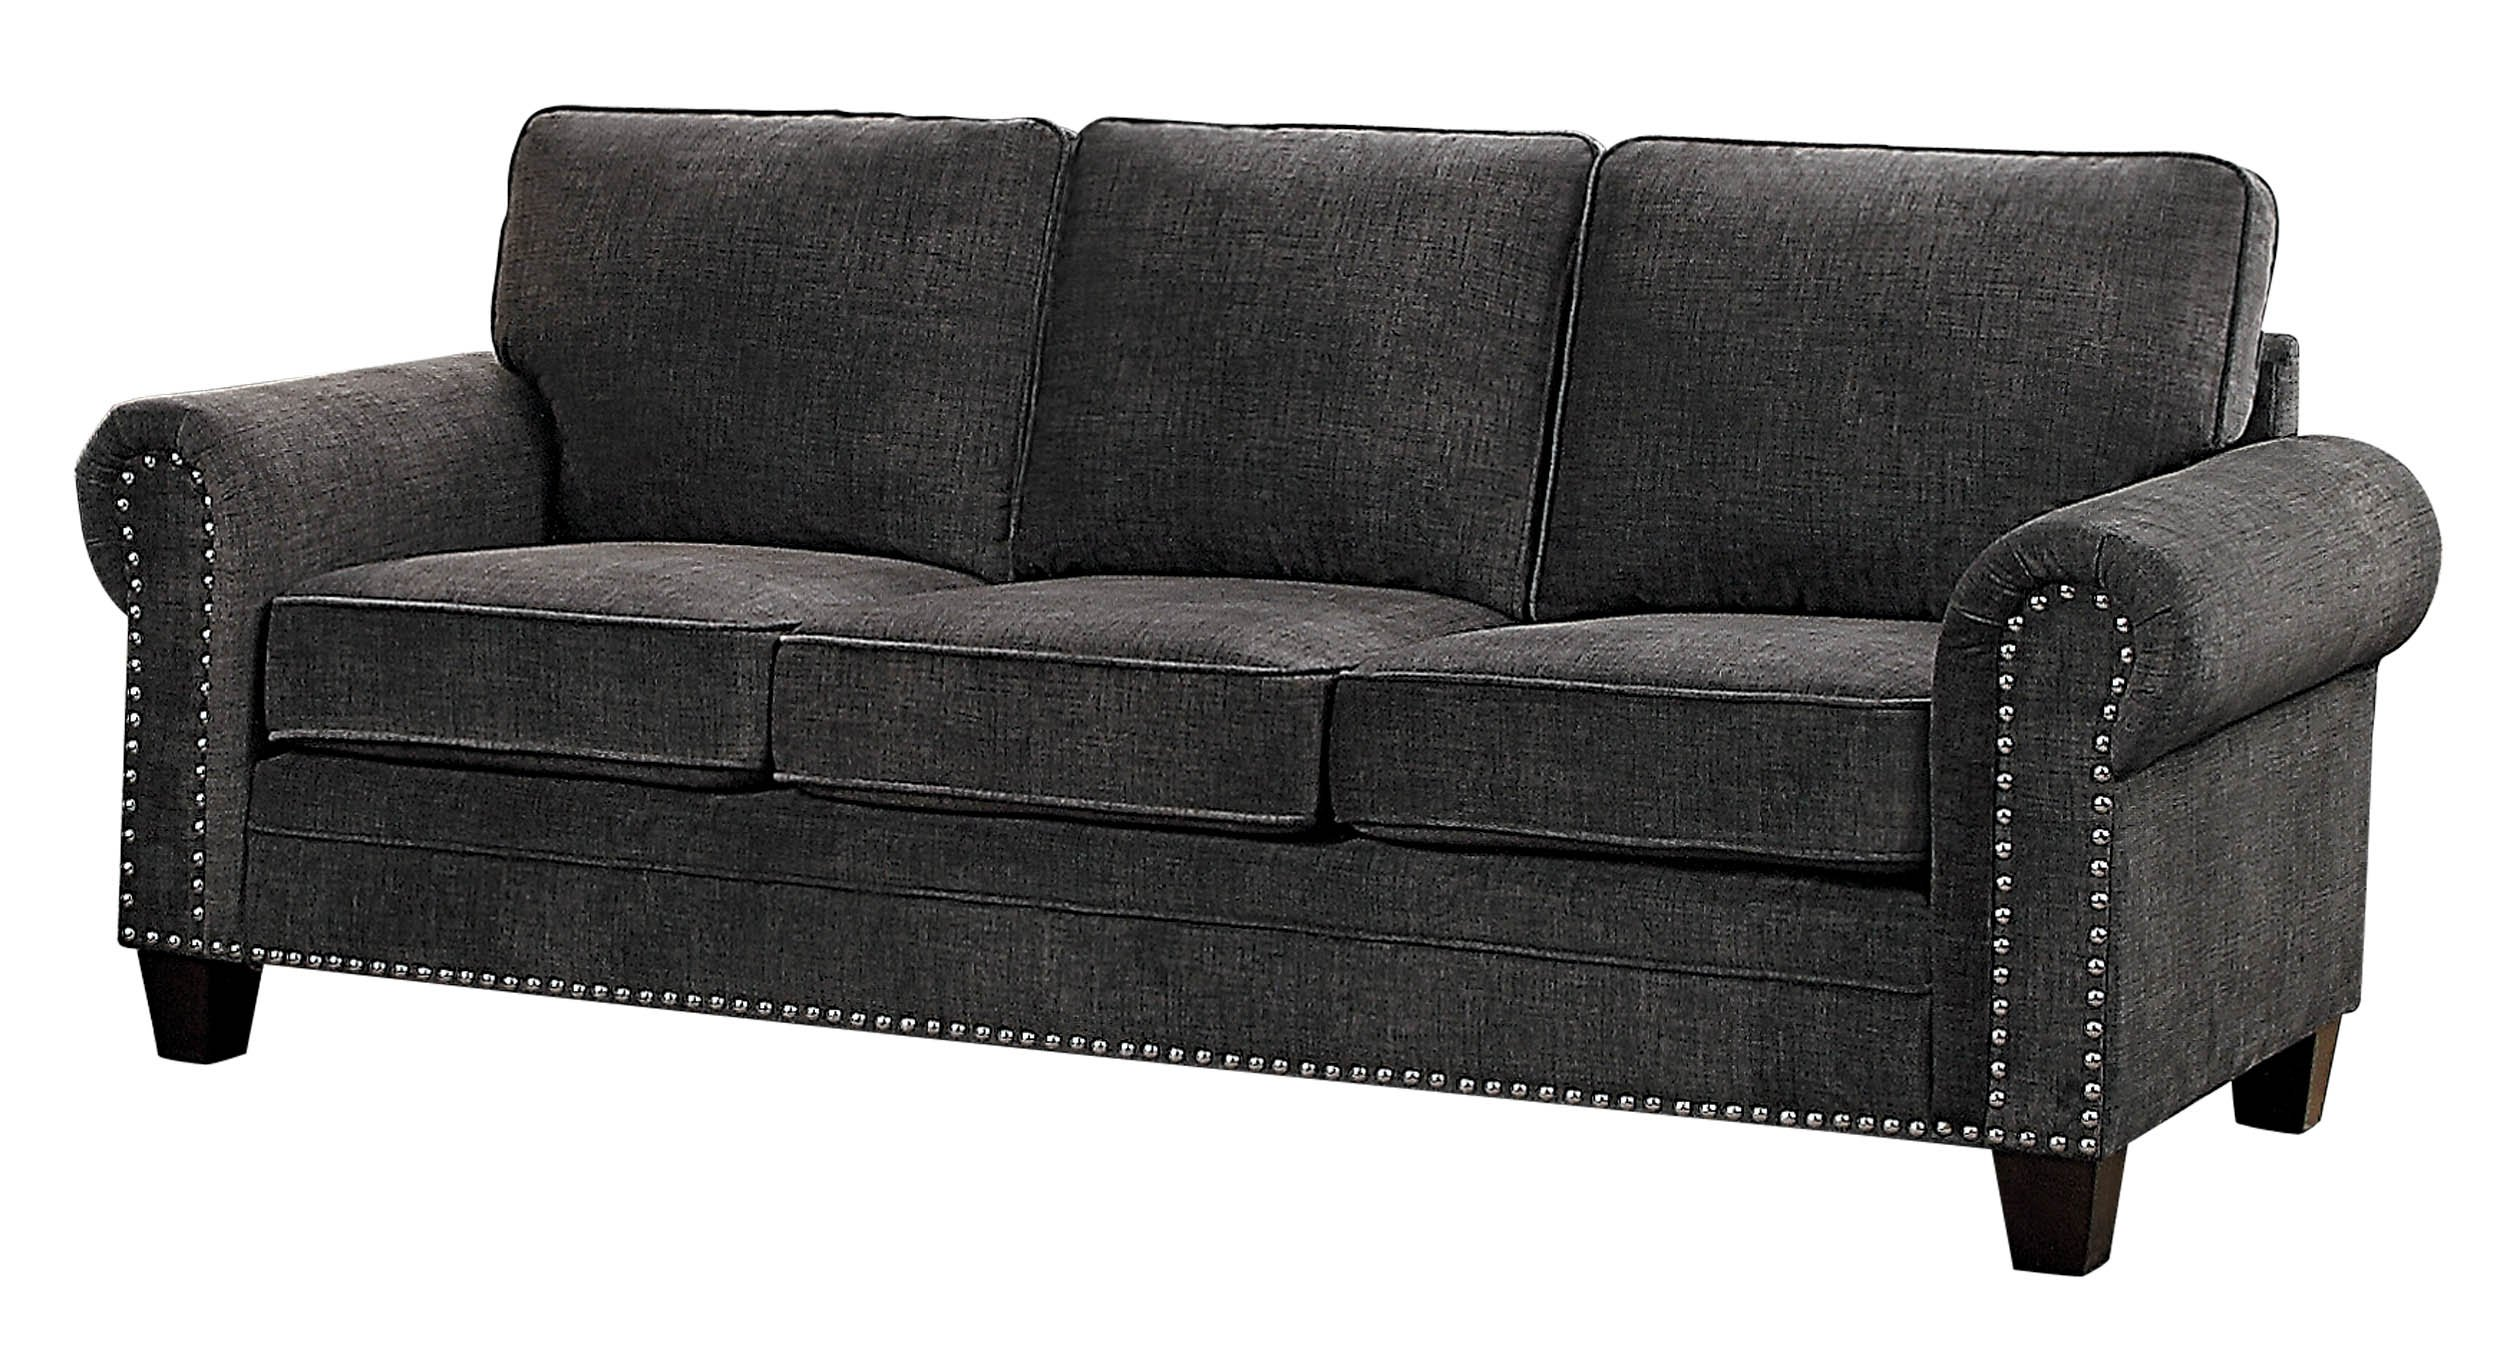 rolled arm sofa amazon com rh amazon com rolled arm sofa slipcover rolled arm sofa bed